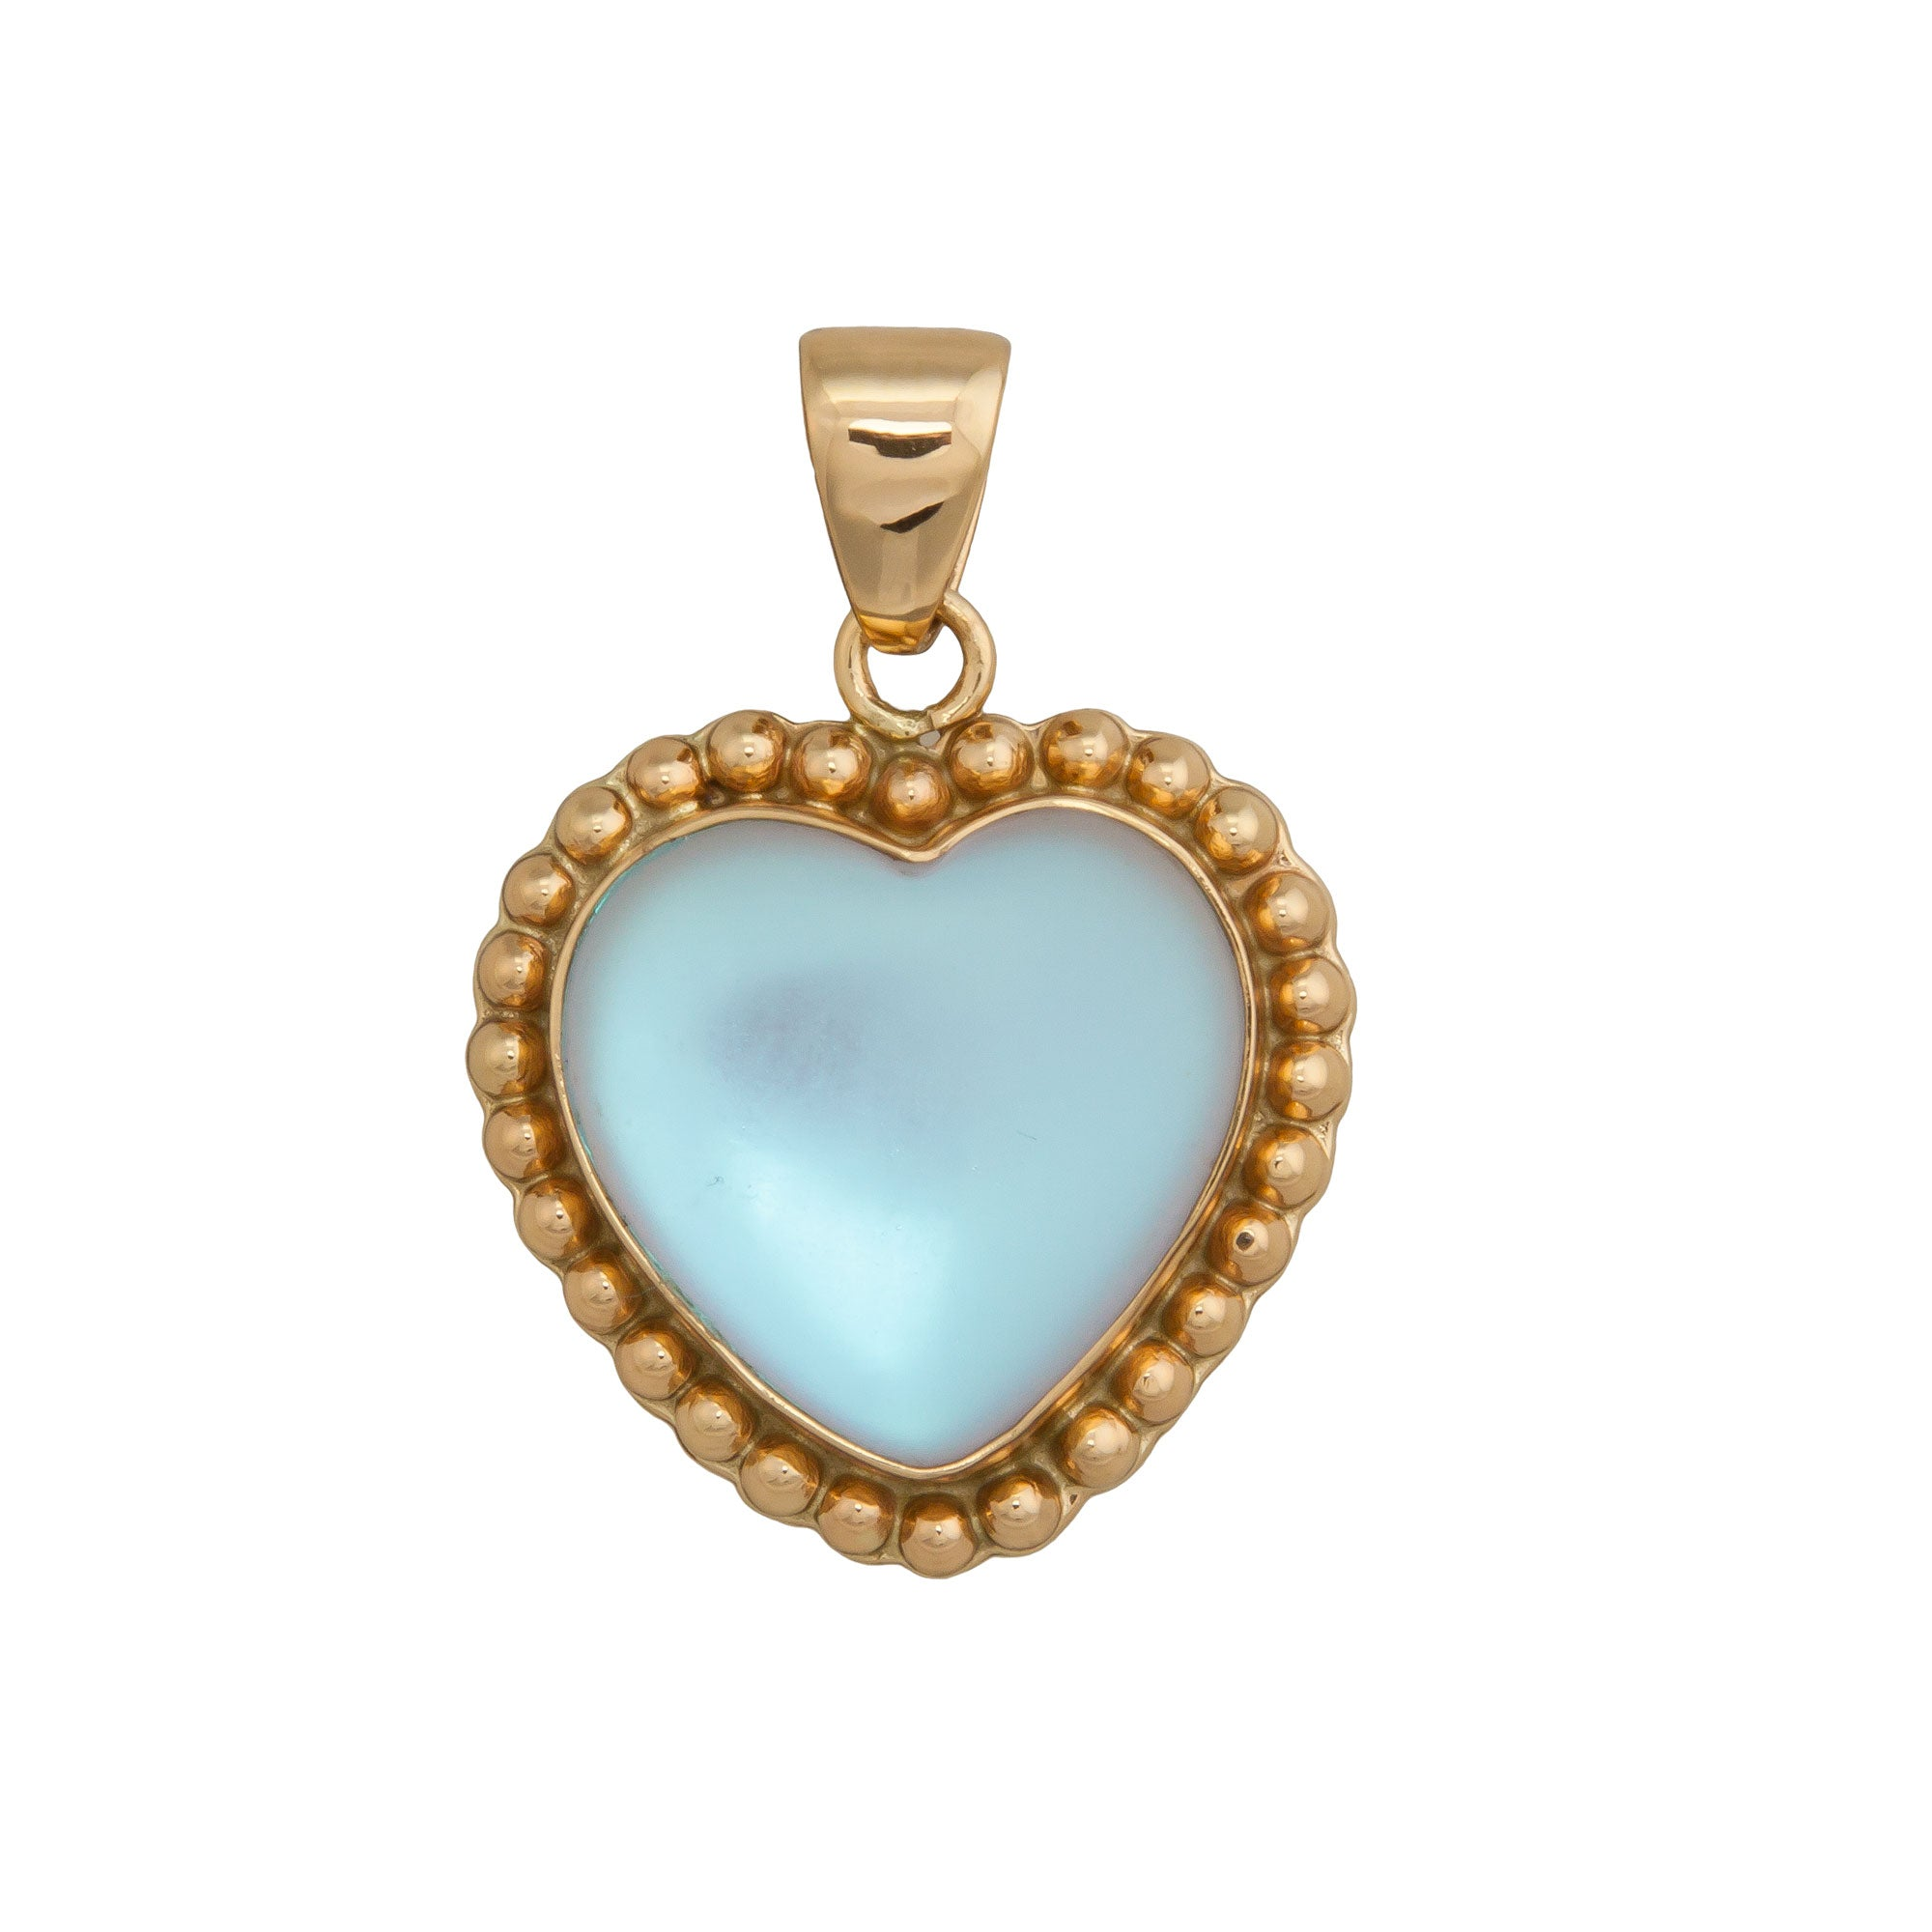 Alchemia Luminite Heart Pendant with Detailed Edge | Charles Albert Inc